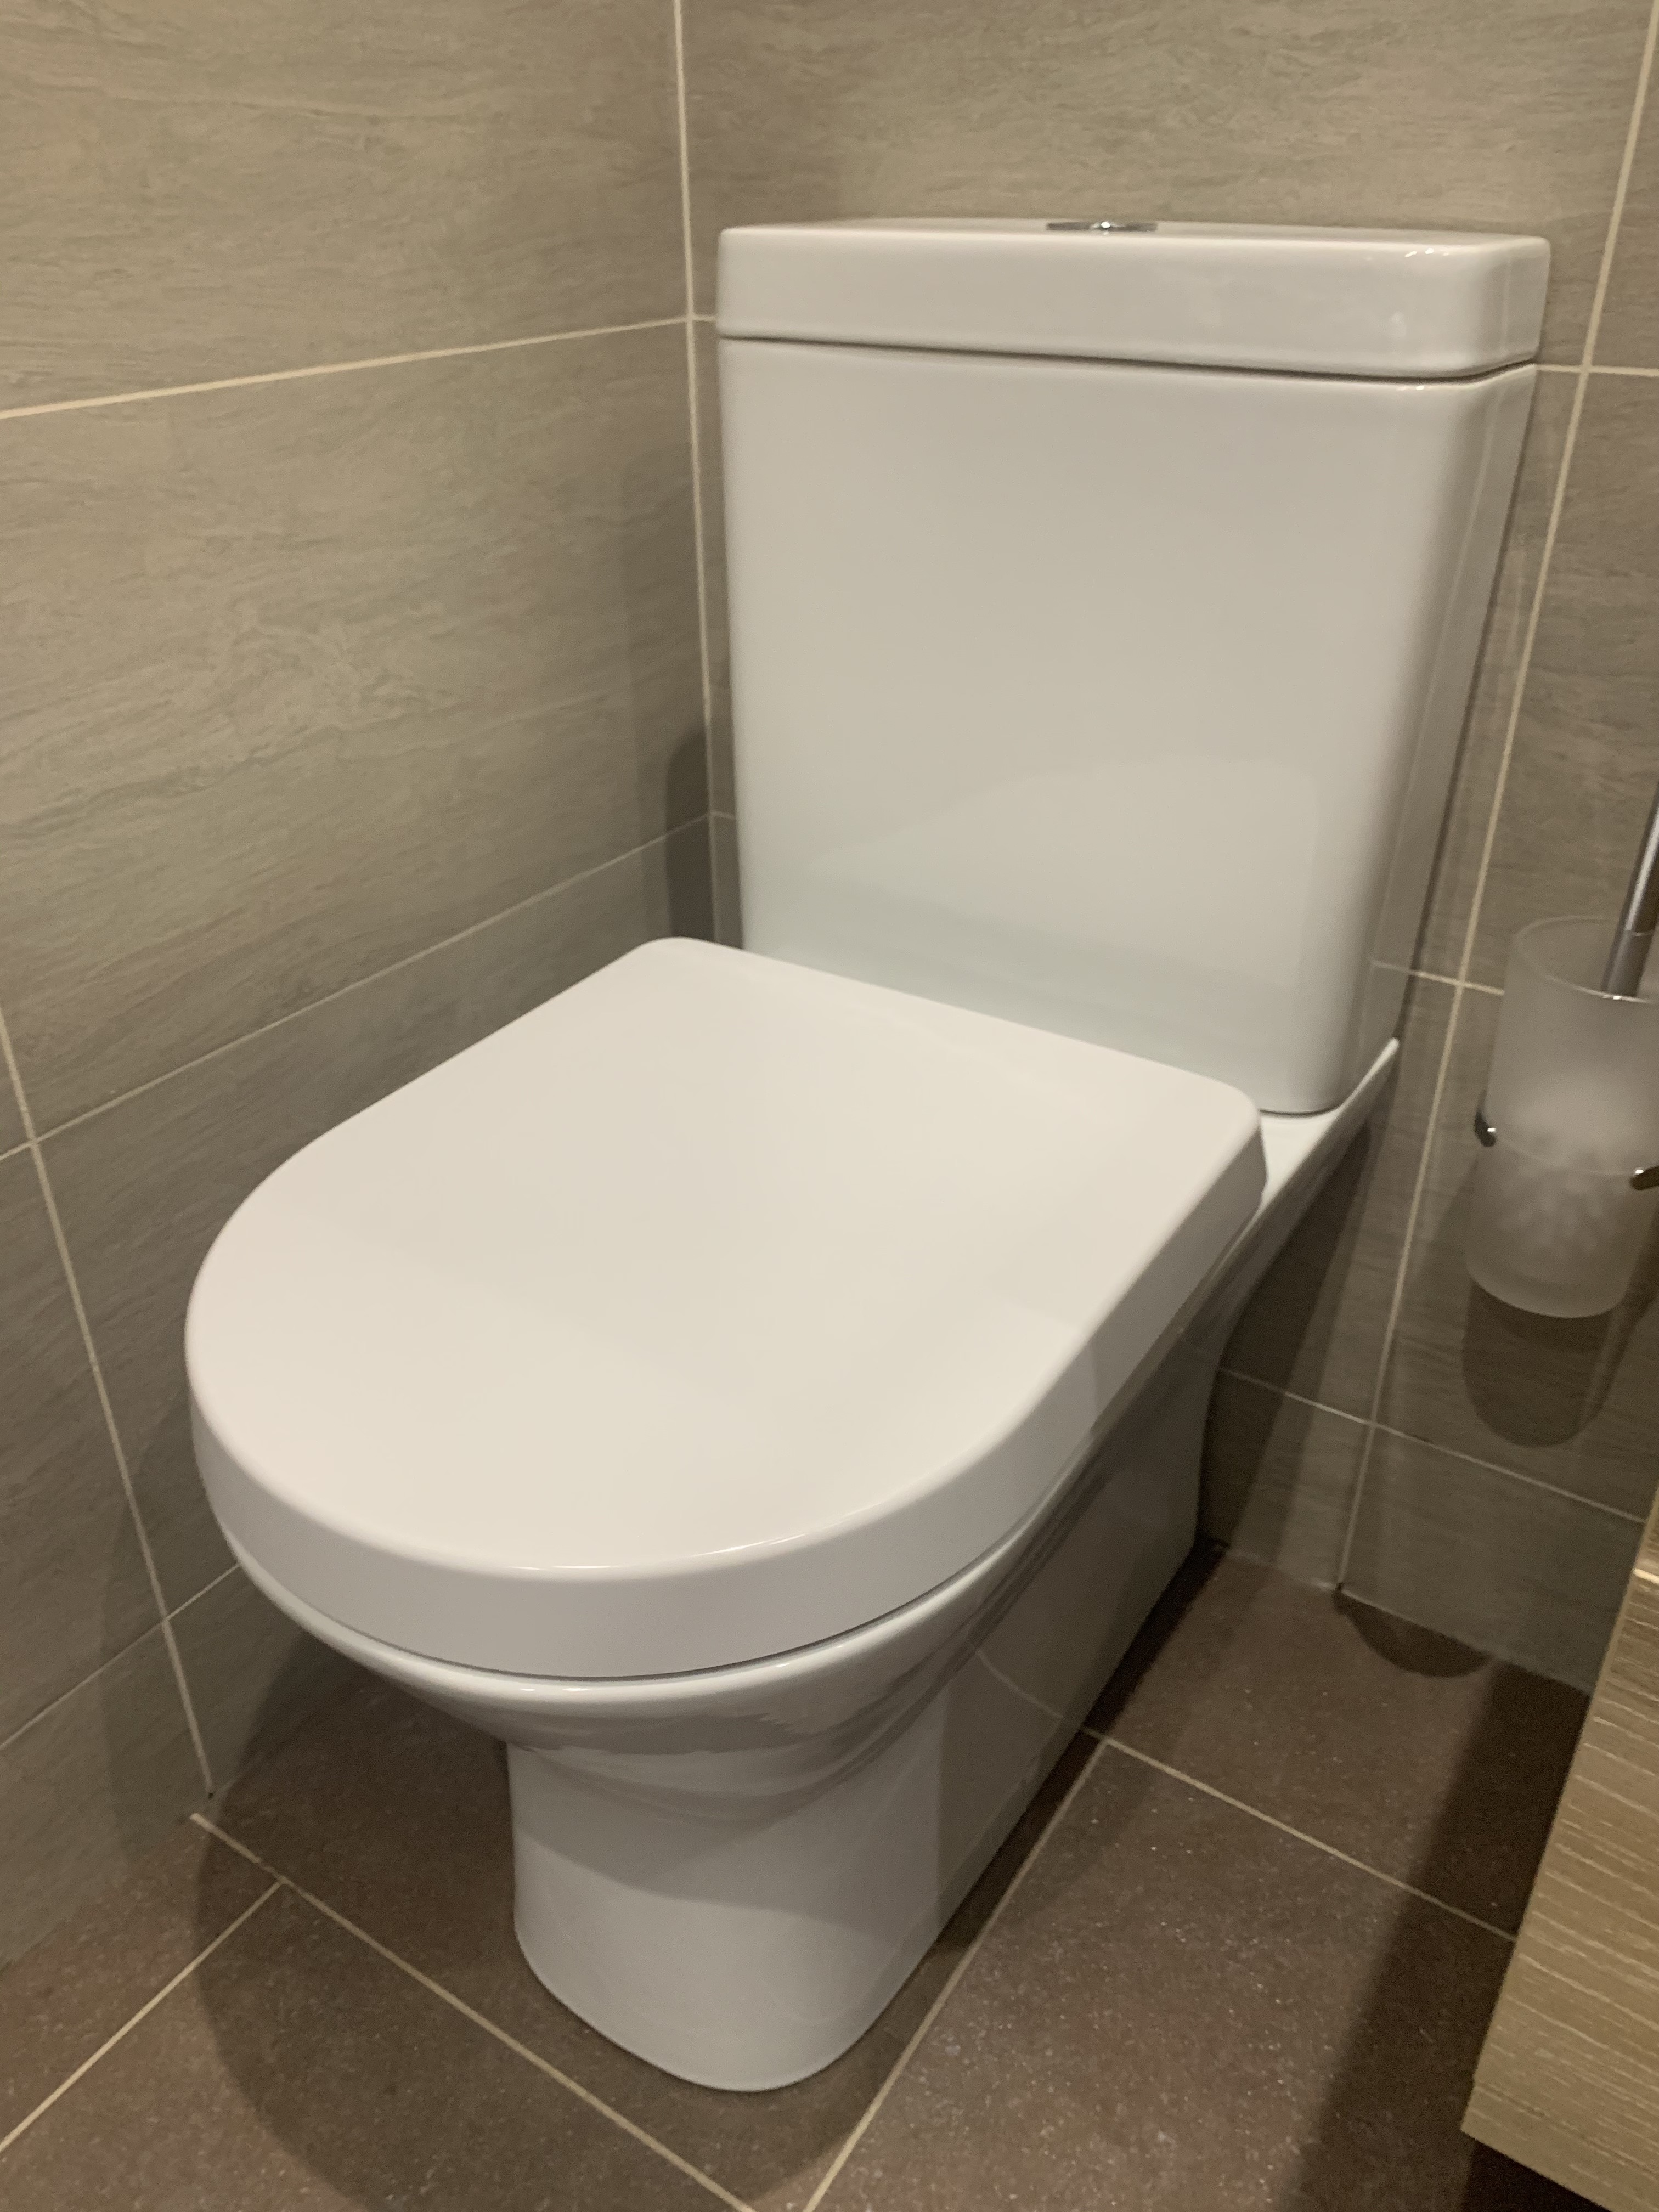 RAK close coupled toilet | Wakefield Bathrooms